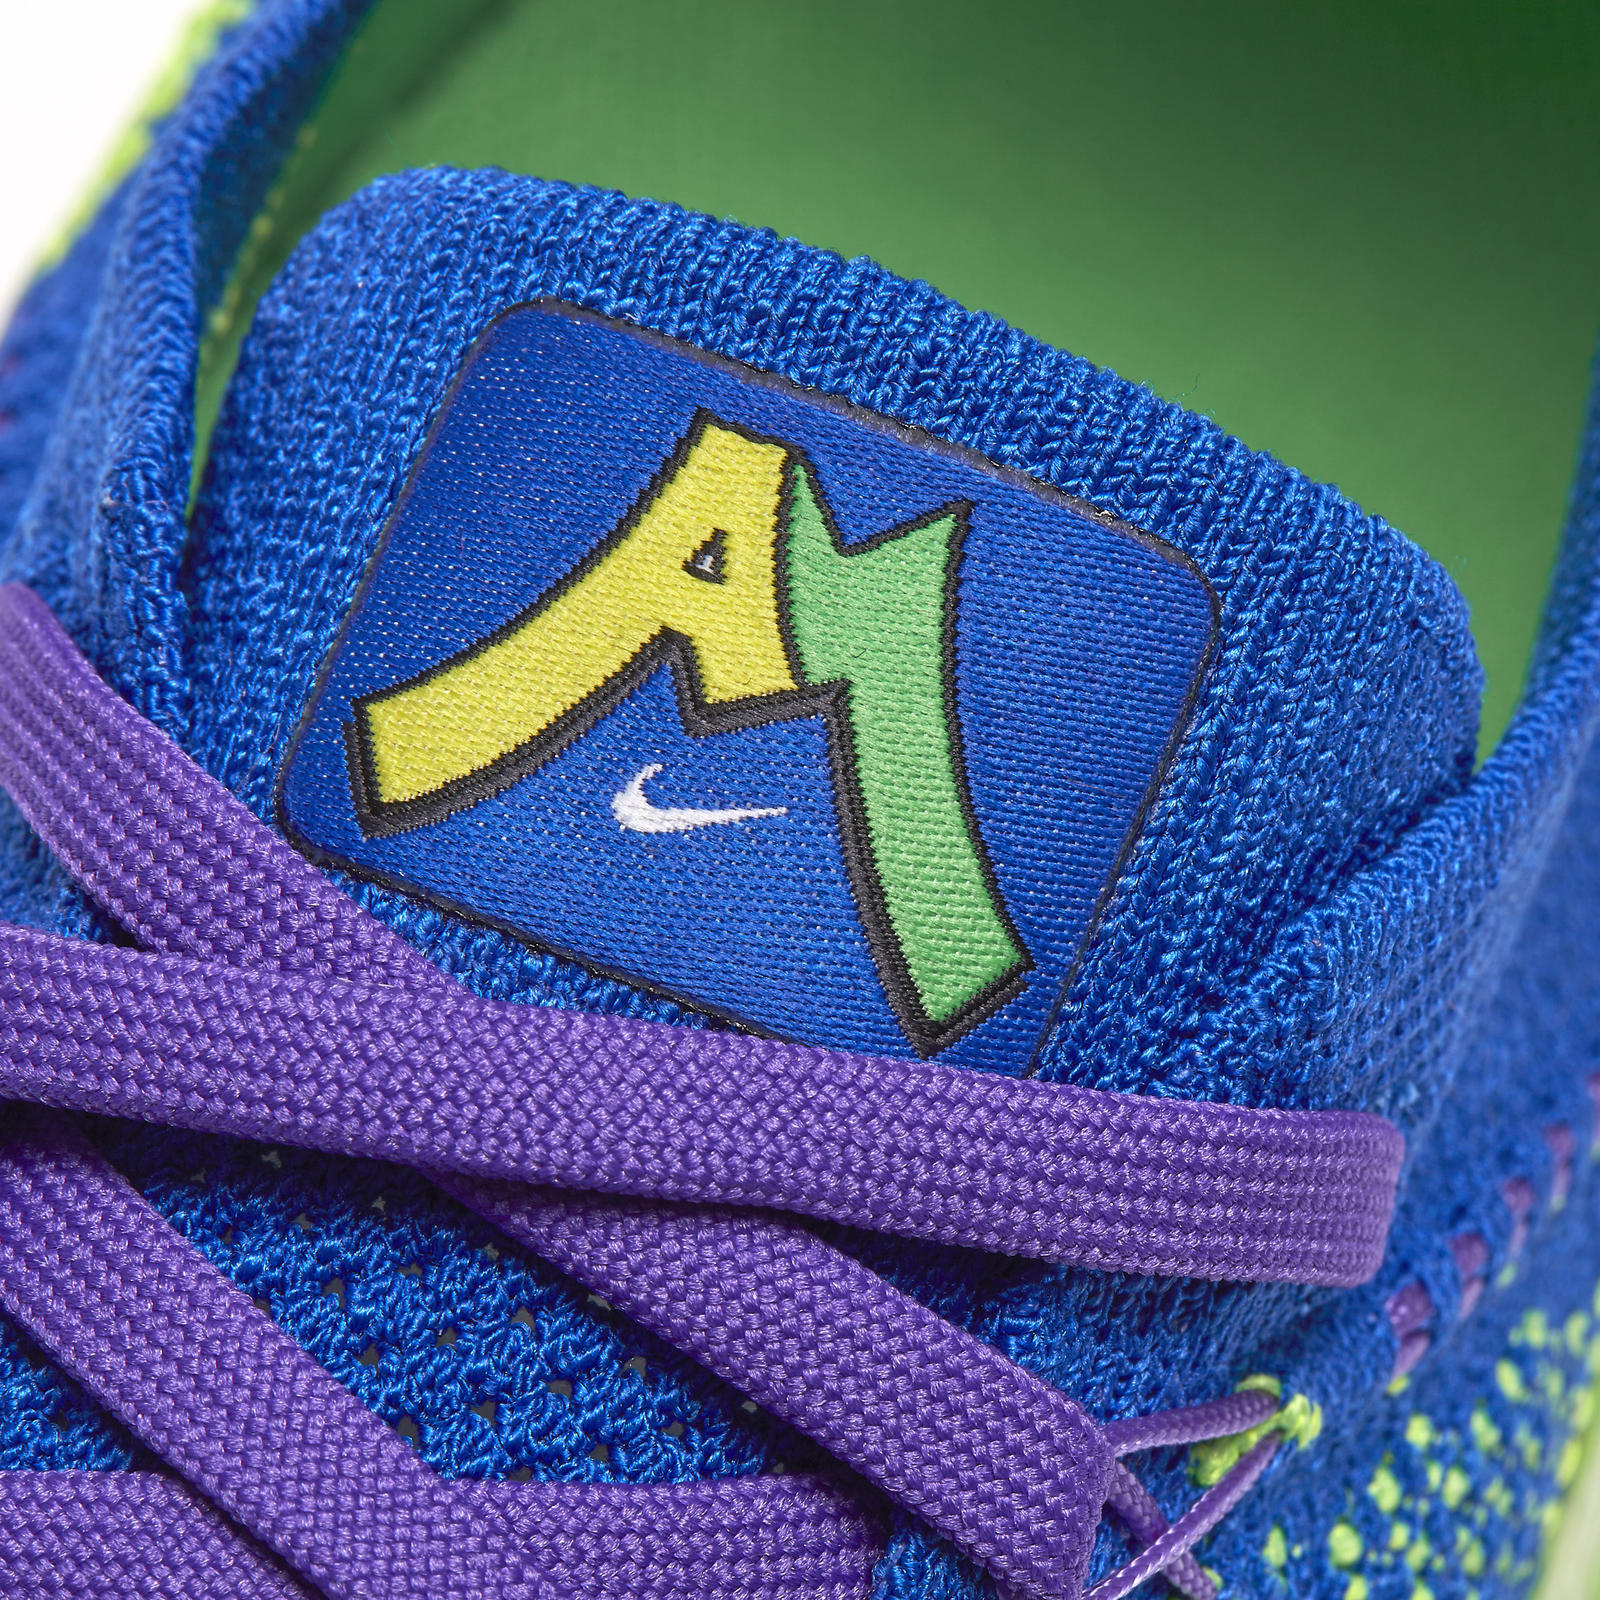 c026982e551a What the Doernbecher Freestyle Program Means to the Sneaker Community 12